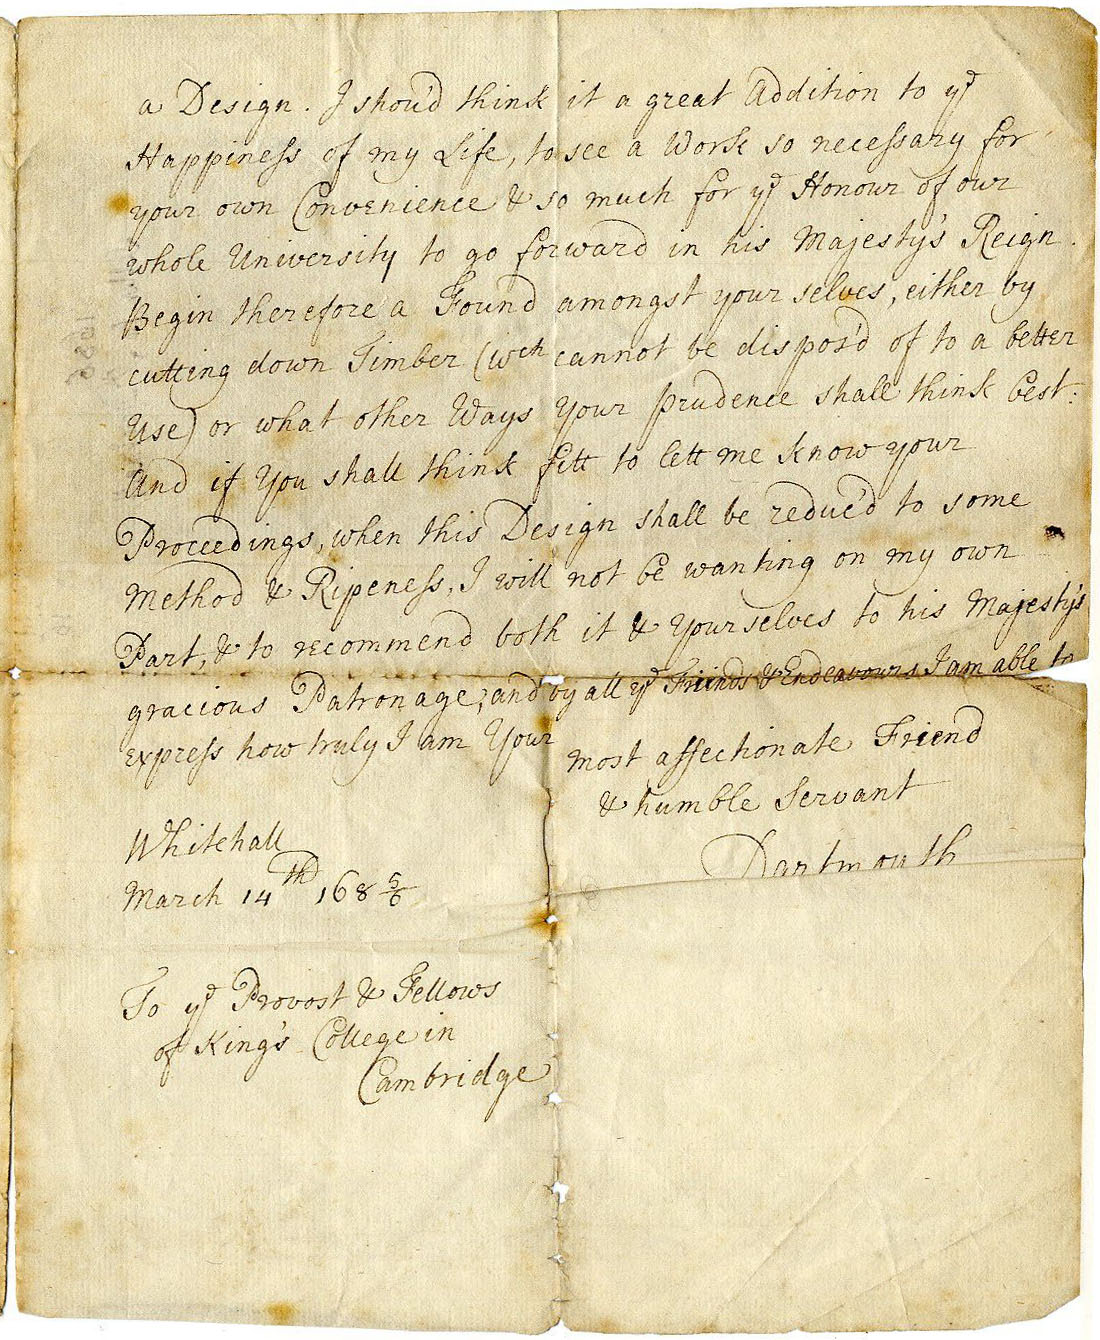 Second page of a letter from George Legg, Lord Dartmouth, to the Provost and Fellows, urging them to build and promising to commend any such project to the King's Patronage, 14 March 1685-6. [GIB/1/1, former ref Coll 1/55]